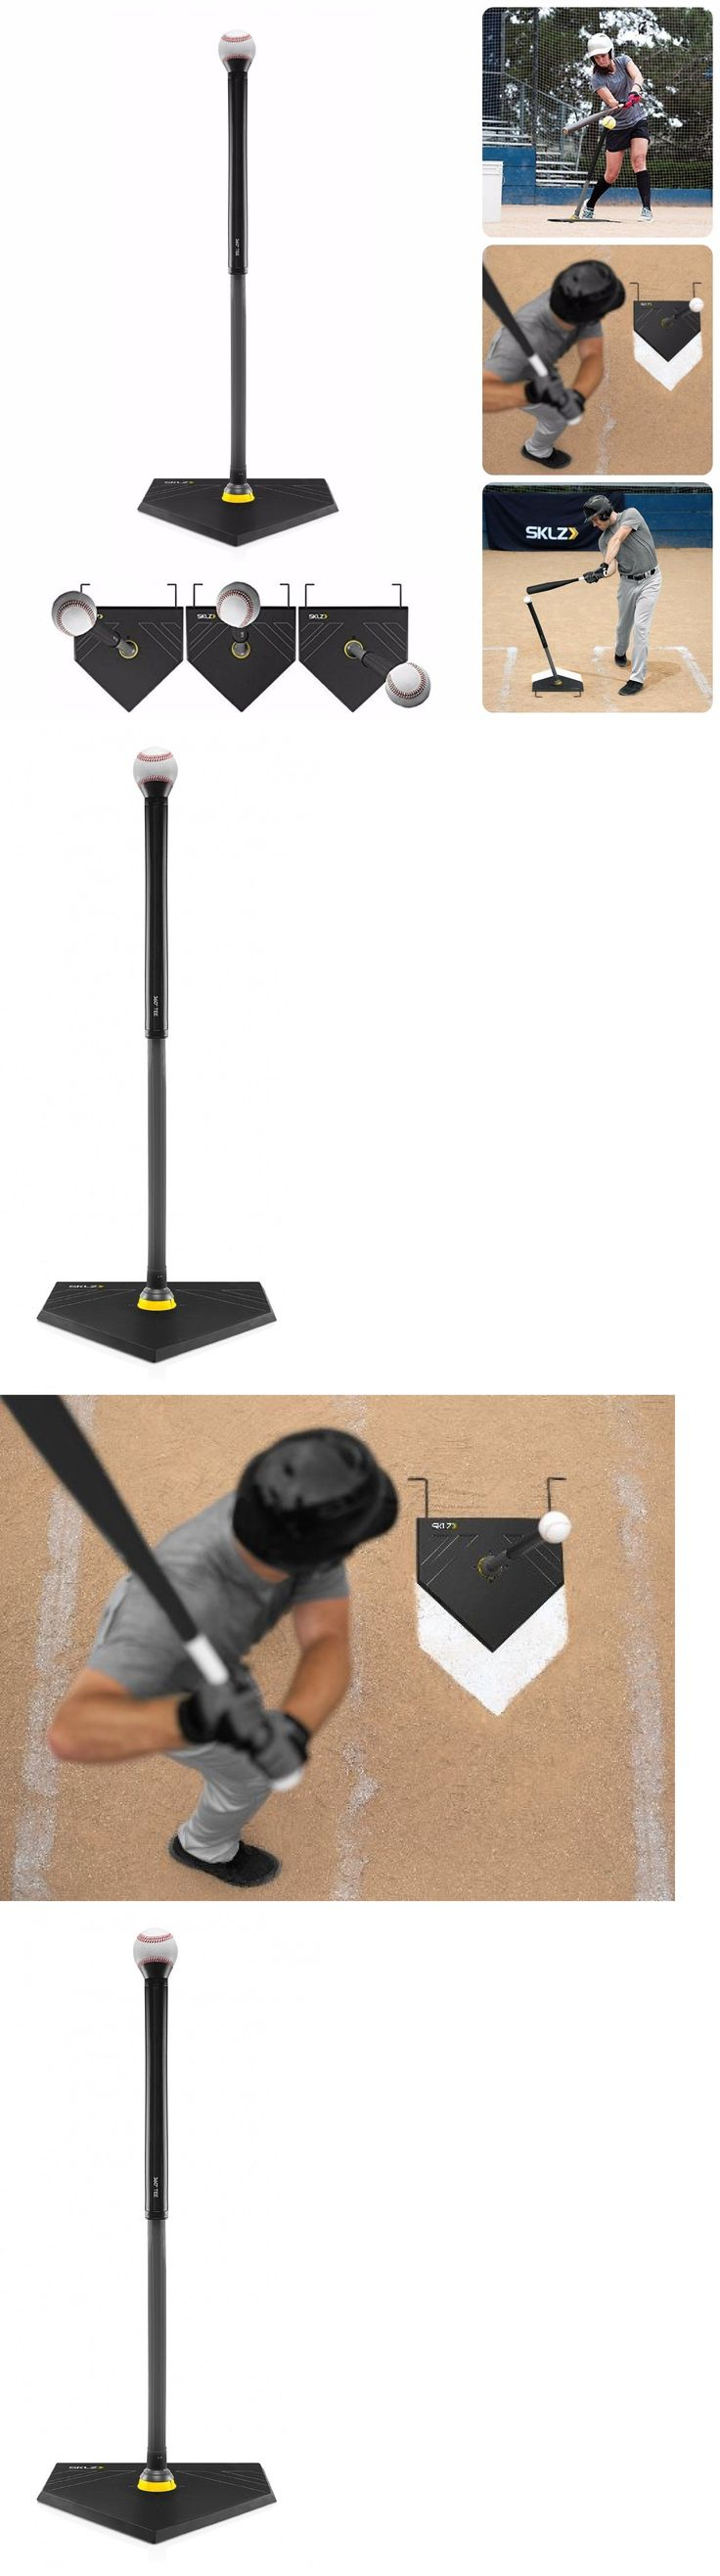 best 25 baseball batting tee ideas on pinterest dugout